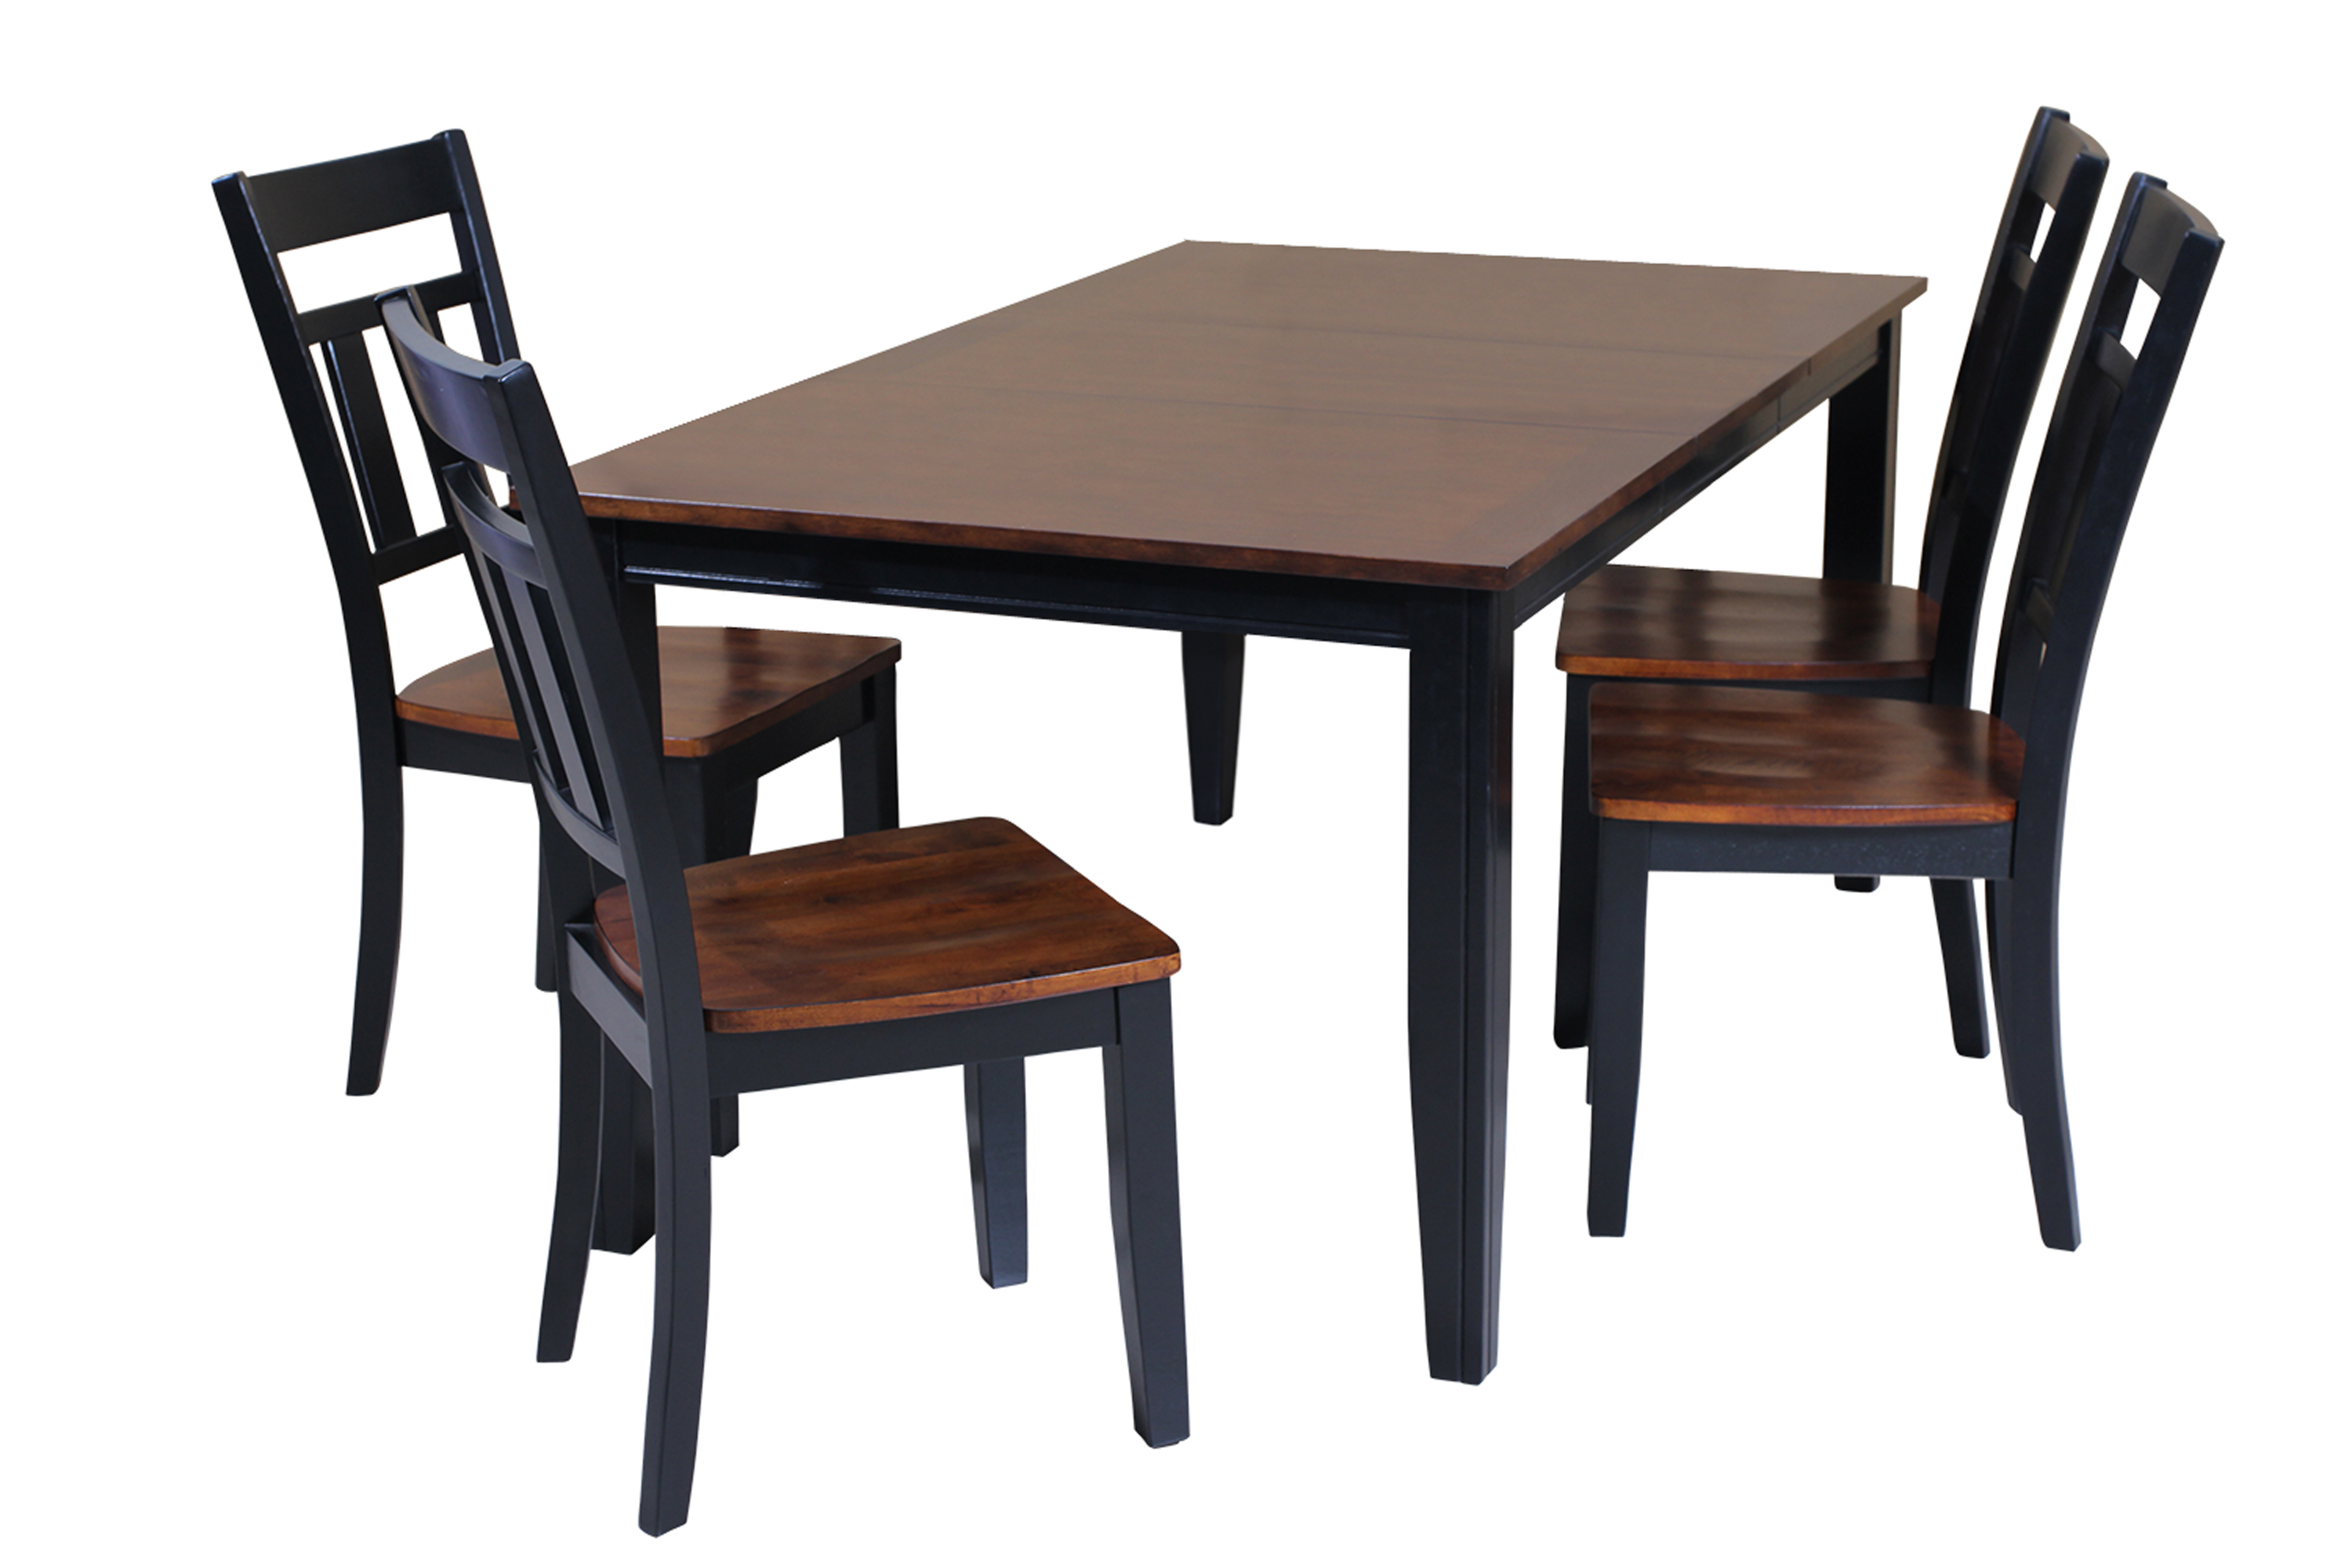 Most Recent Ttp Furnish Intended For Adan 5 Piece Solid Wood Dining Sets (Set Of 5) (View 17 of 20)